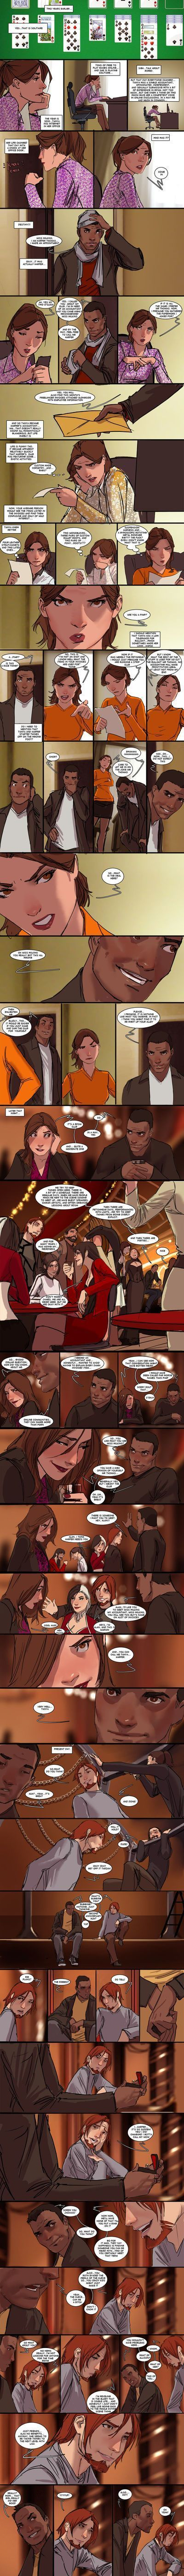 [Shiniez] Sunstone - Chapters 1-2-3-4-5(ongoing) - part 4